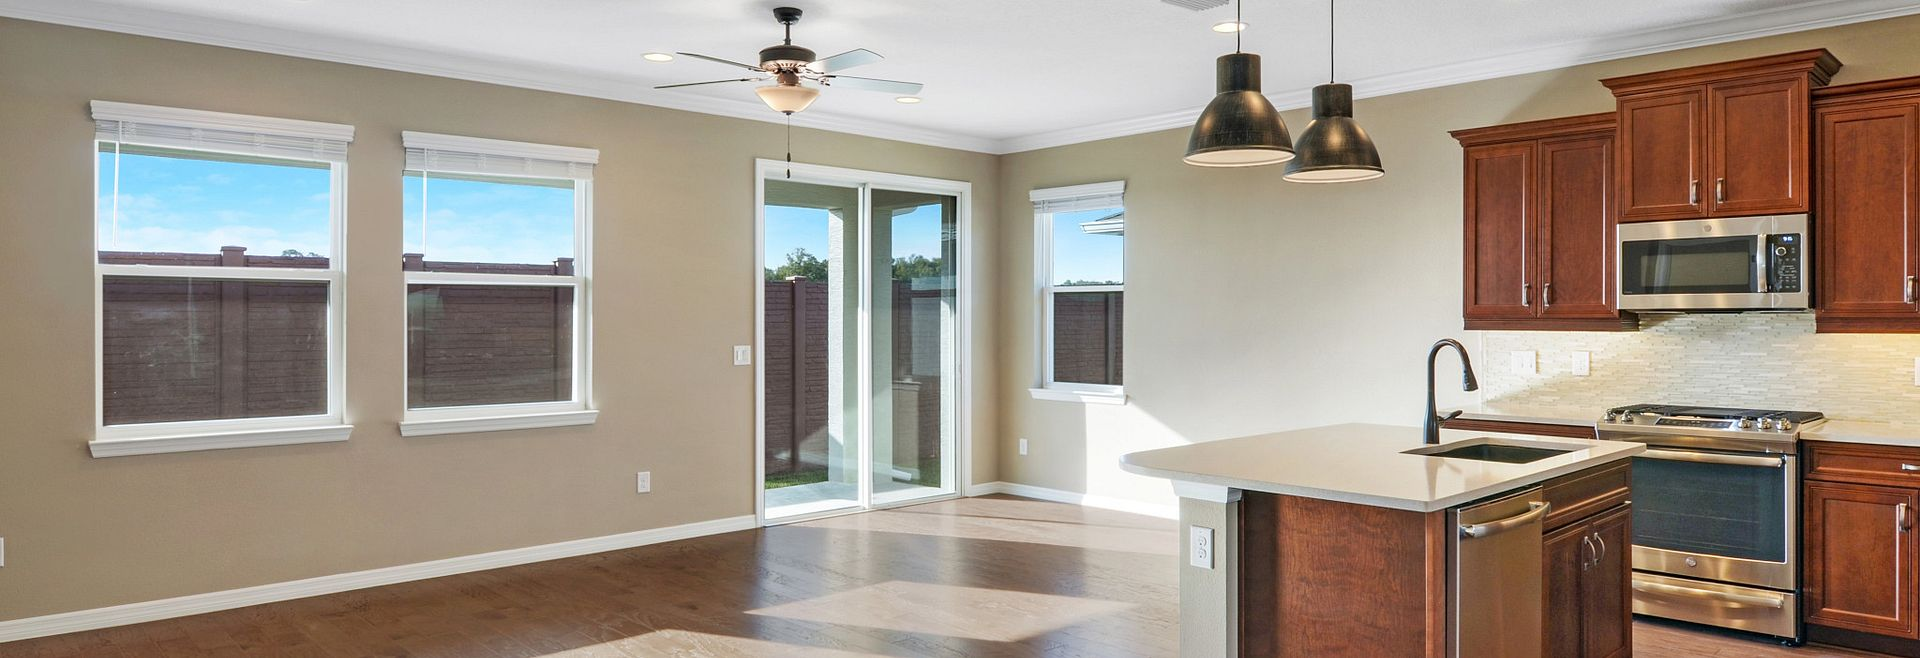 Trilogy at Ocala Preserve Aria Quick Move In Home